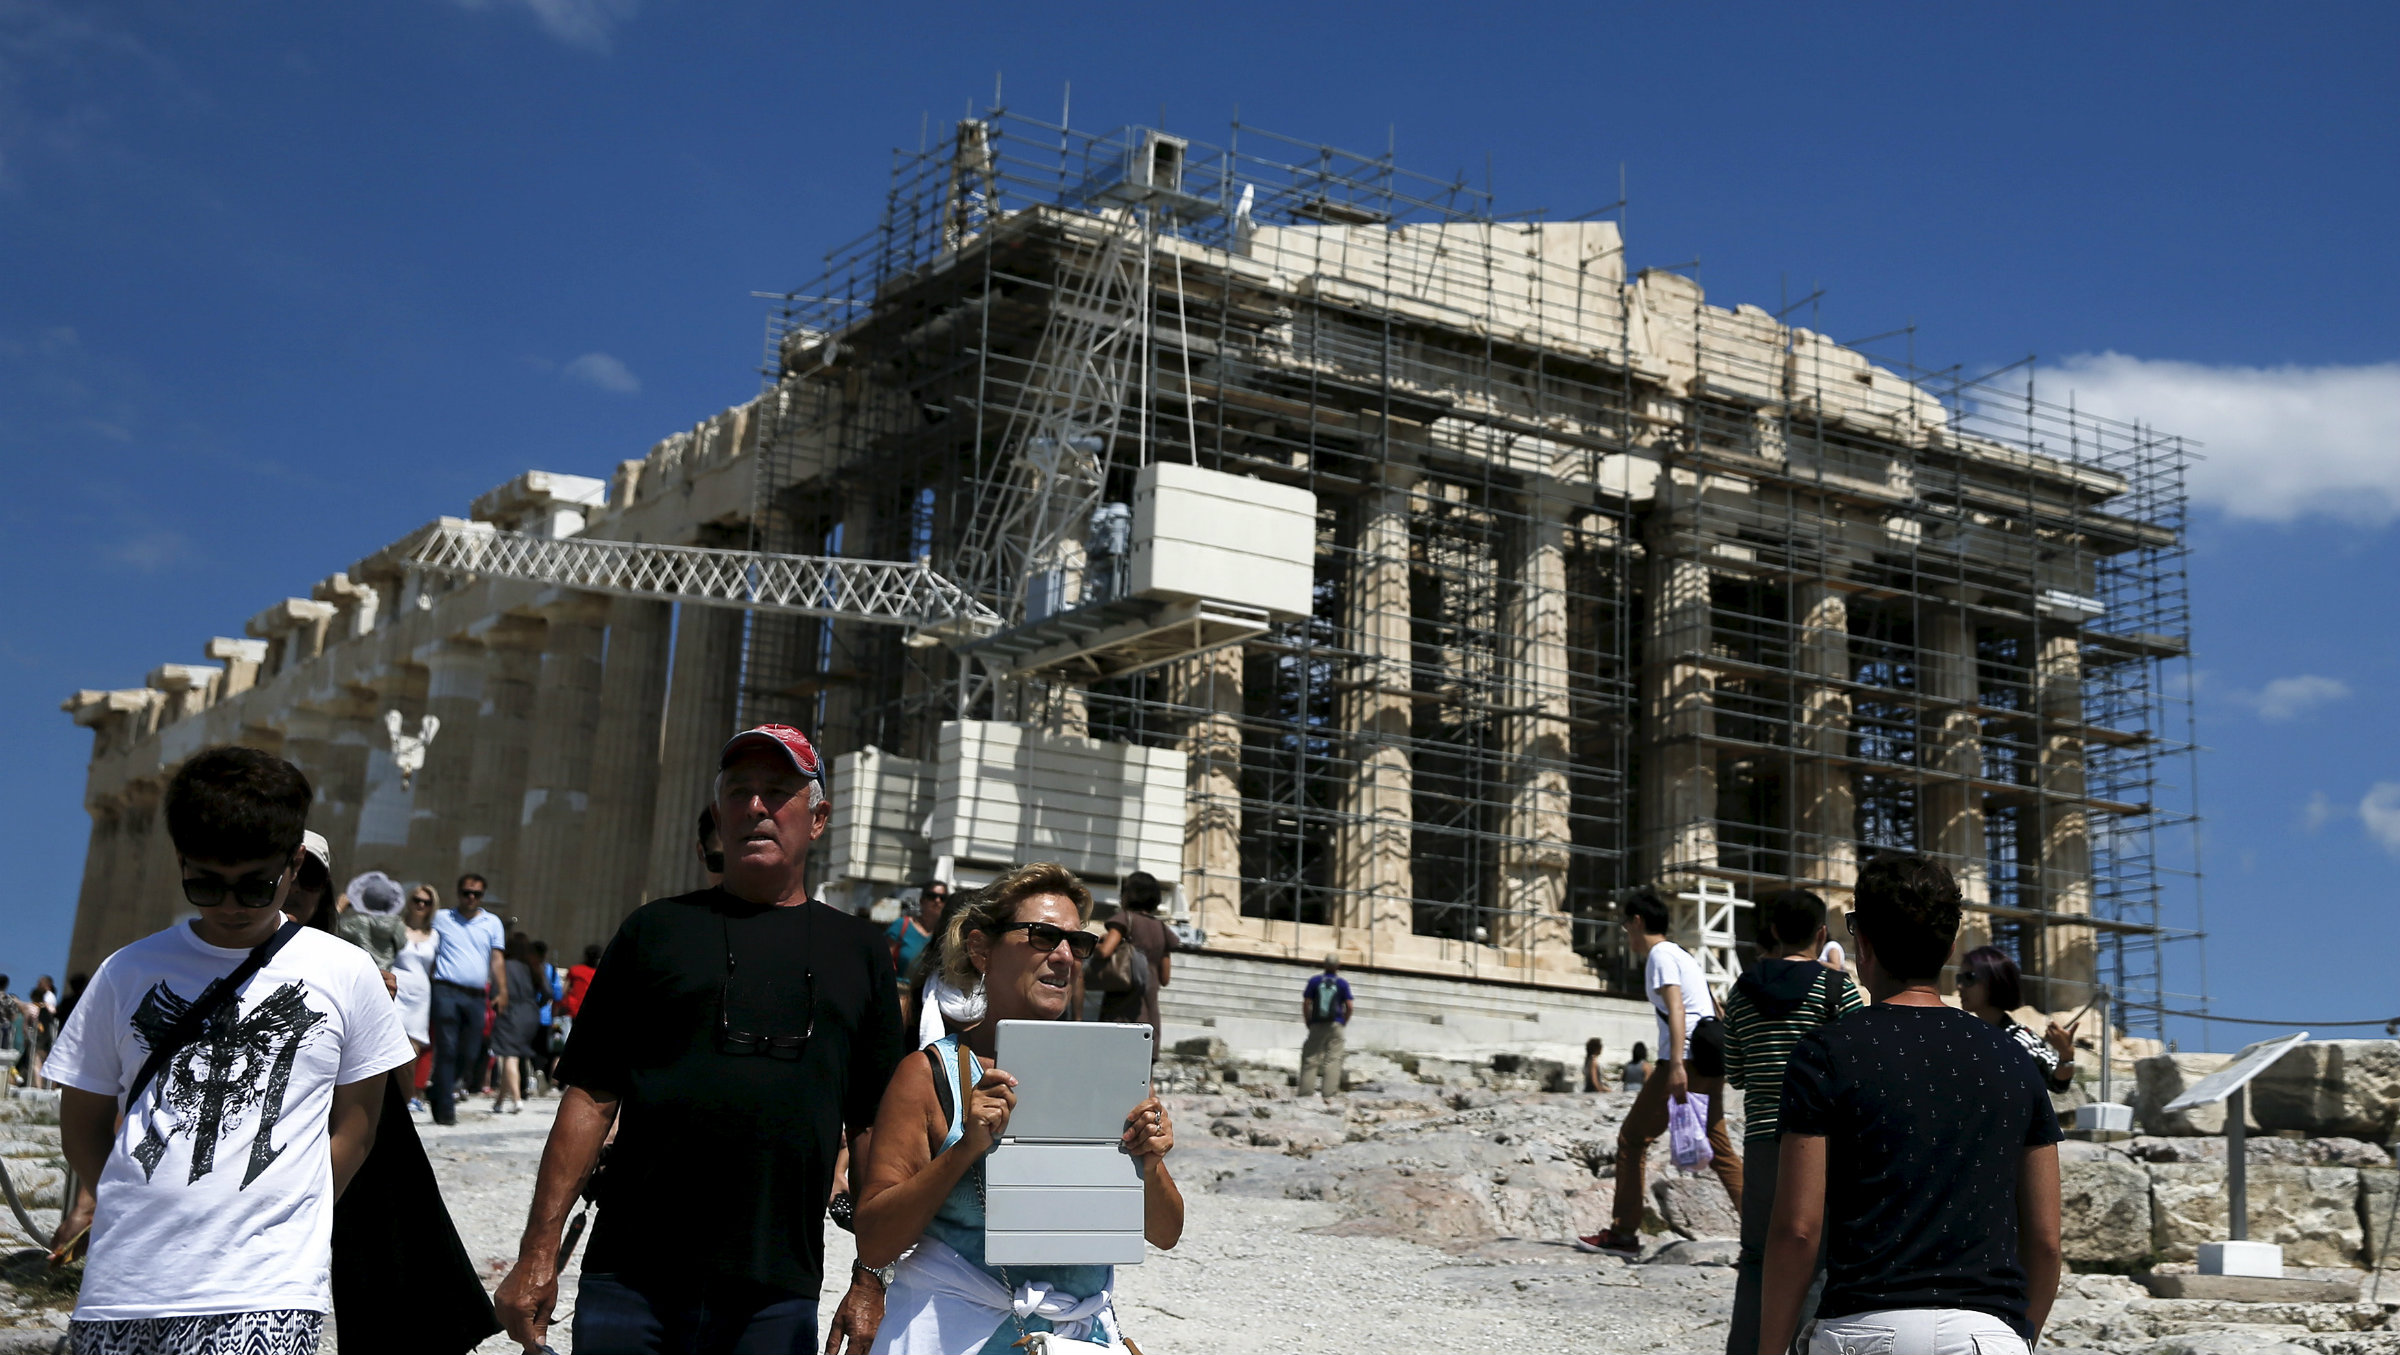 Tourists in front of the ancient Parthenon temple atop the Acropolis hill archaeological site.